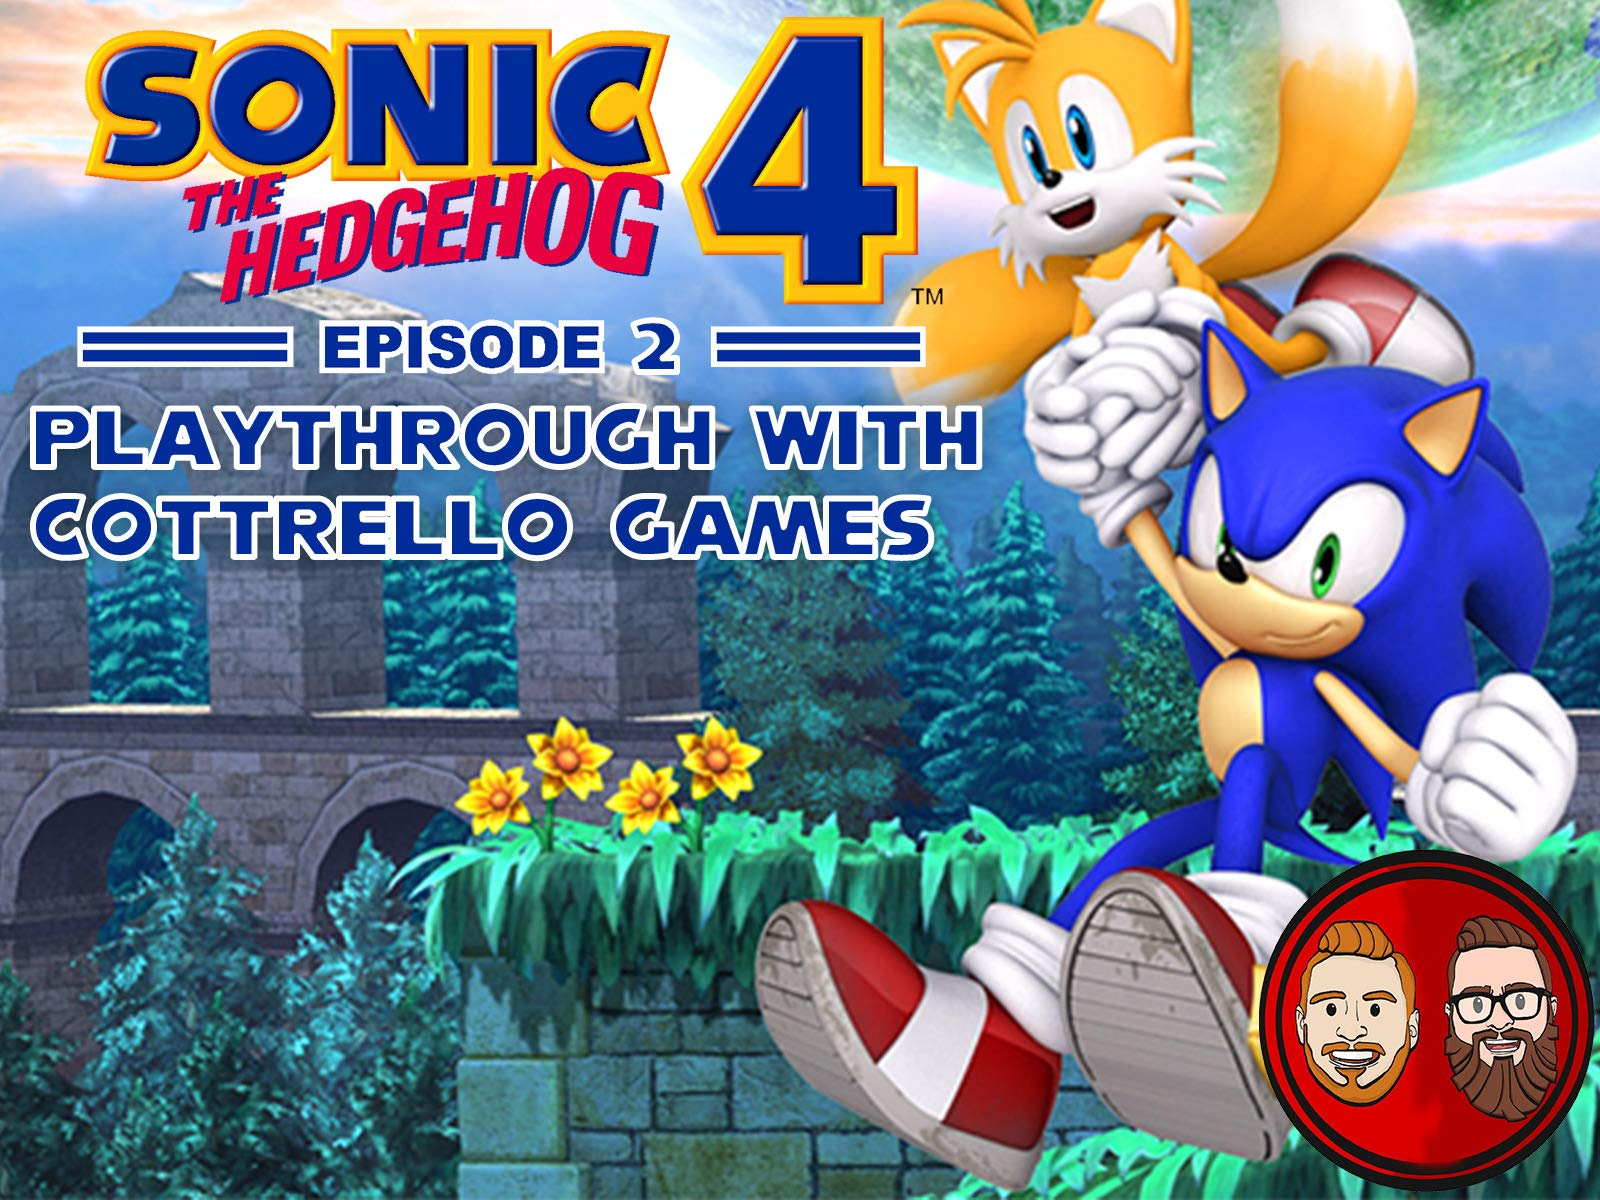 Sonic the Hedgehog 4 Episode 2 Playthrough with Cottrello Games